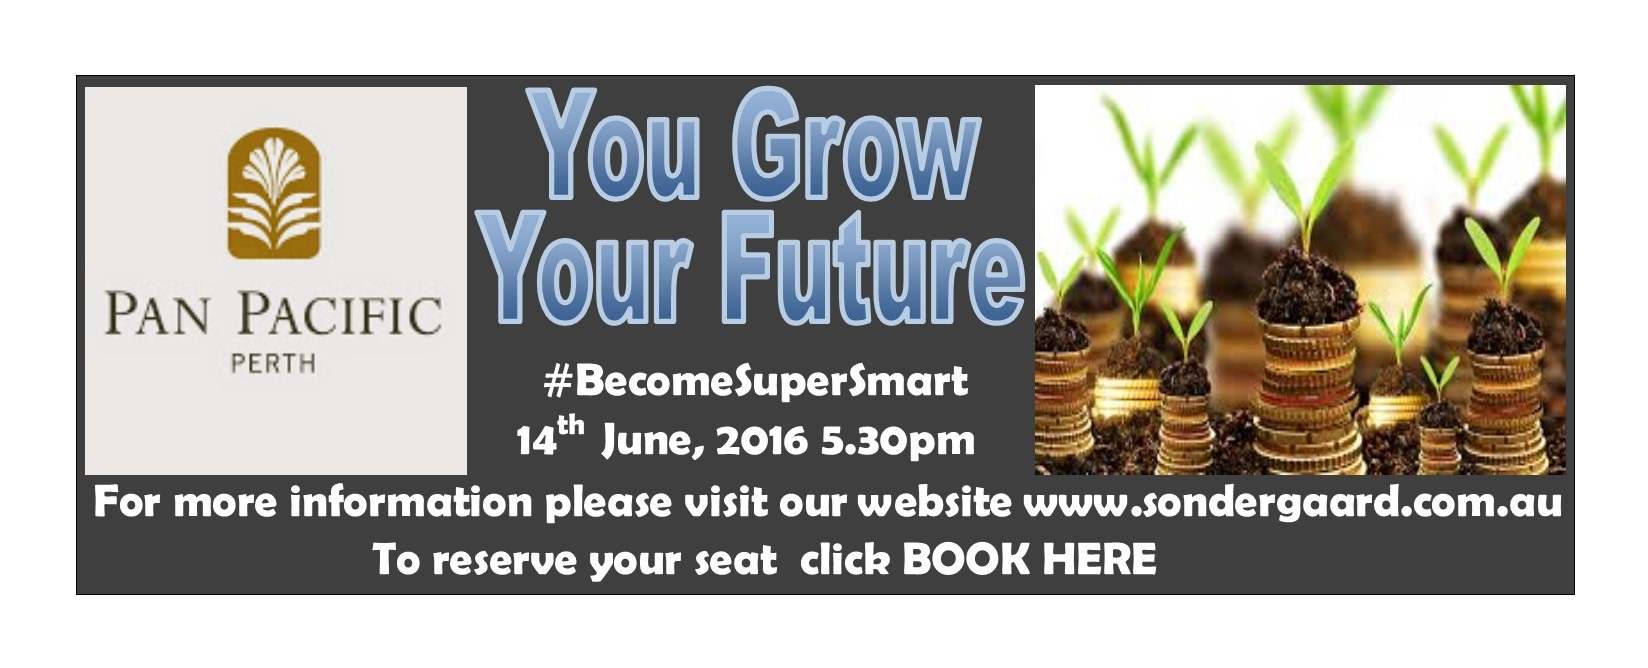 You Grow Your Future